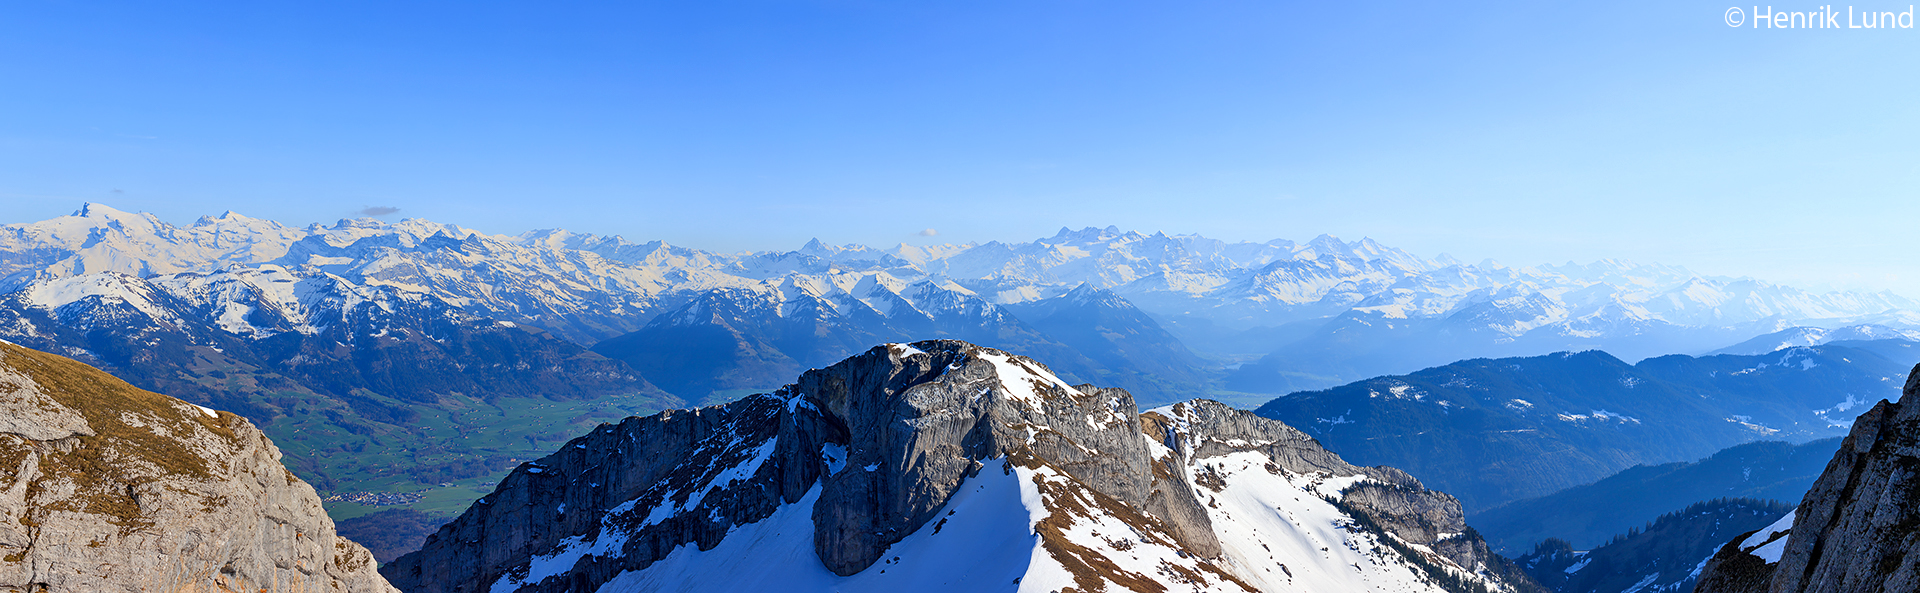 View from top of mount Pilatus in Lucerne, Switzerland, towards Matthorn and Jungfrau. April 2018.